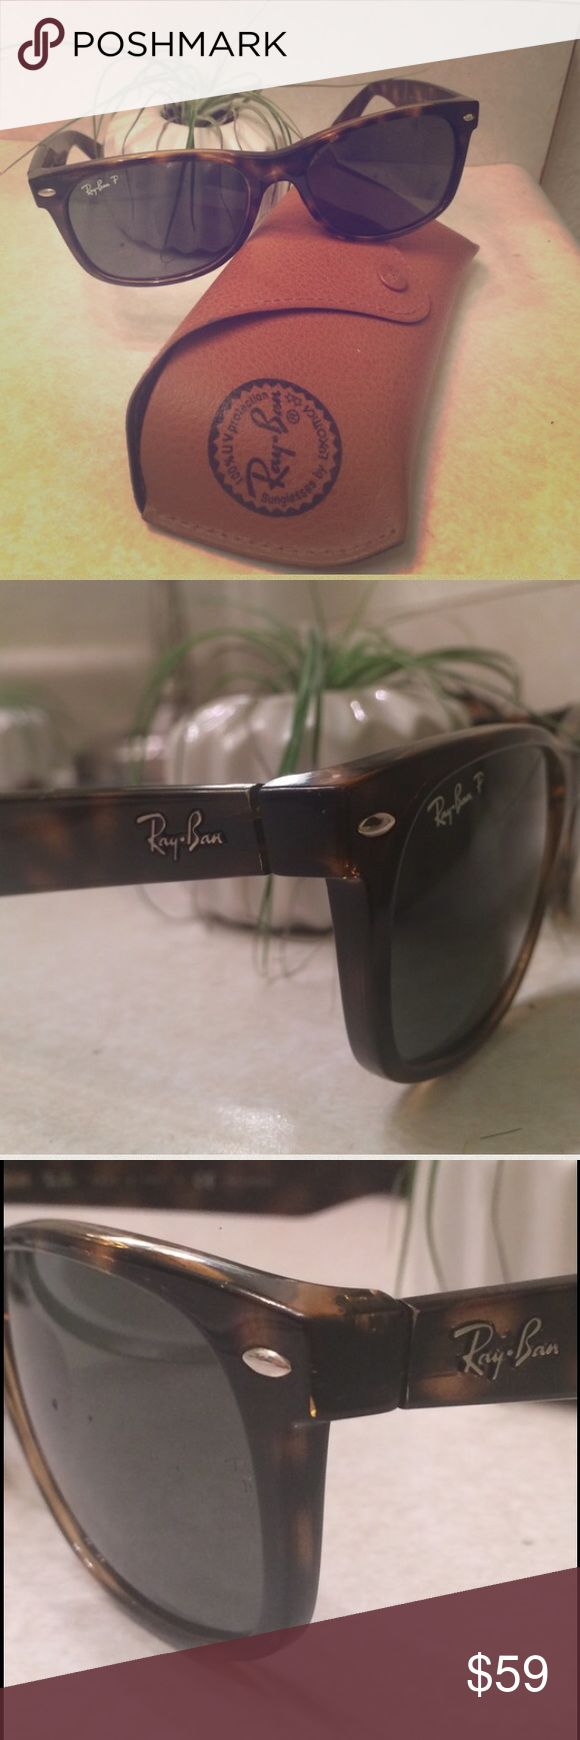 Polarized N.Wayfarer  Ray Bans Tortoise shell polarized Rayban New Wayfarer sunglasses. There is a small chip out of one lense as shown in the last photo. Ray-Ban Accessories Sunglasses